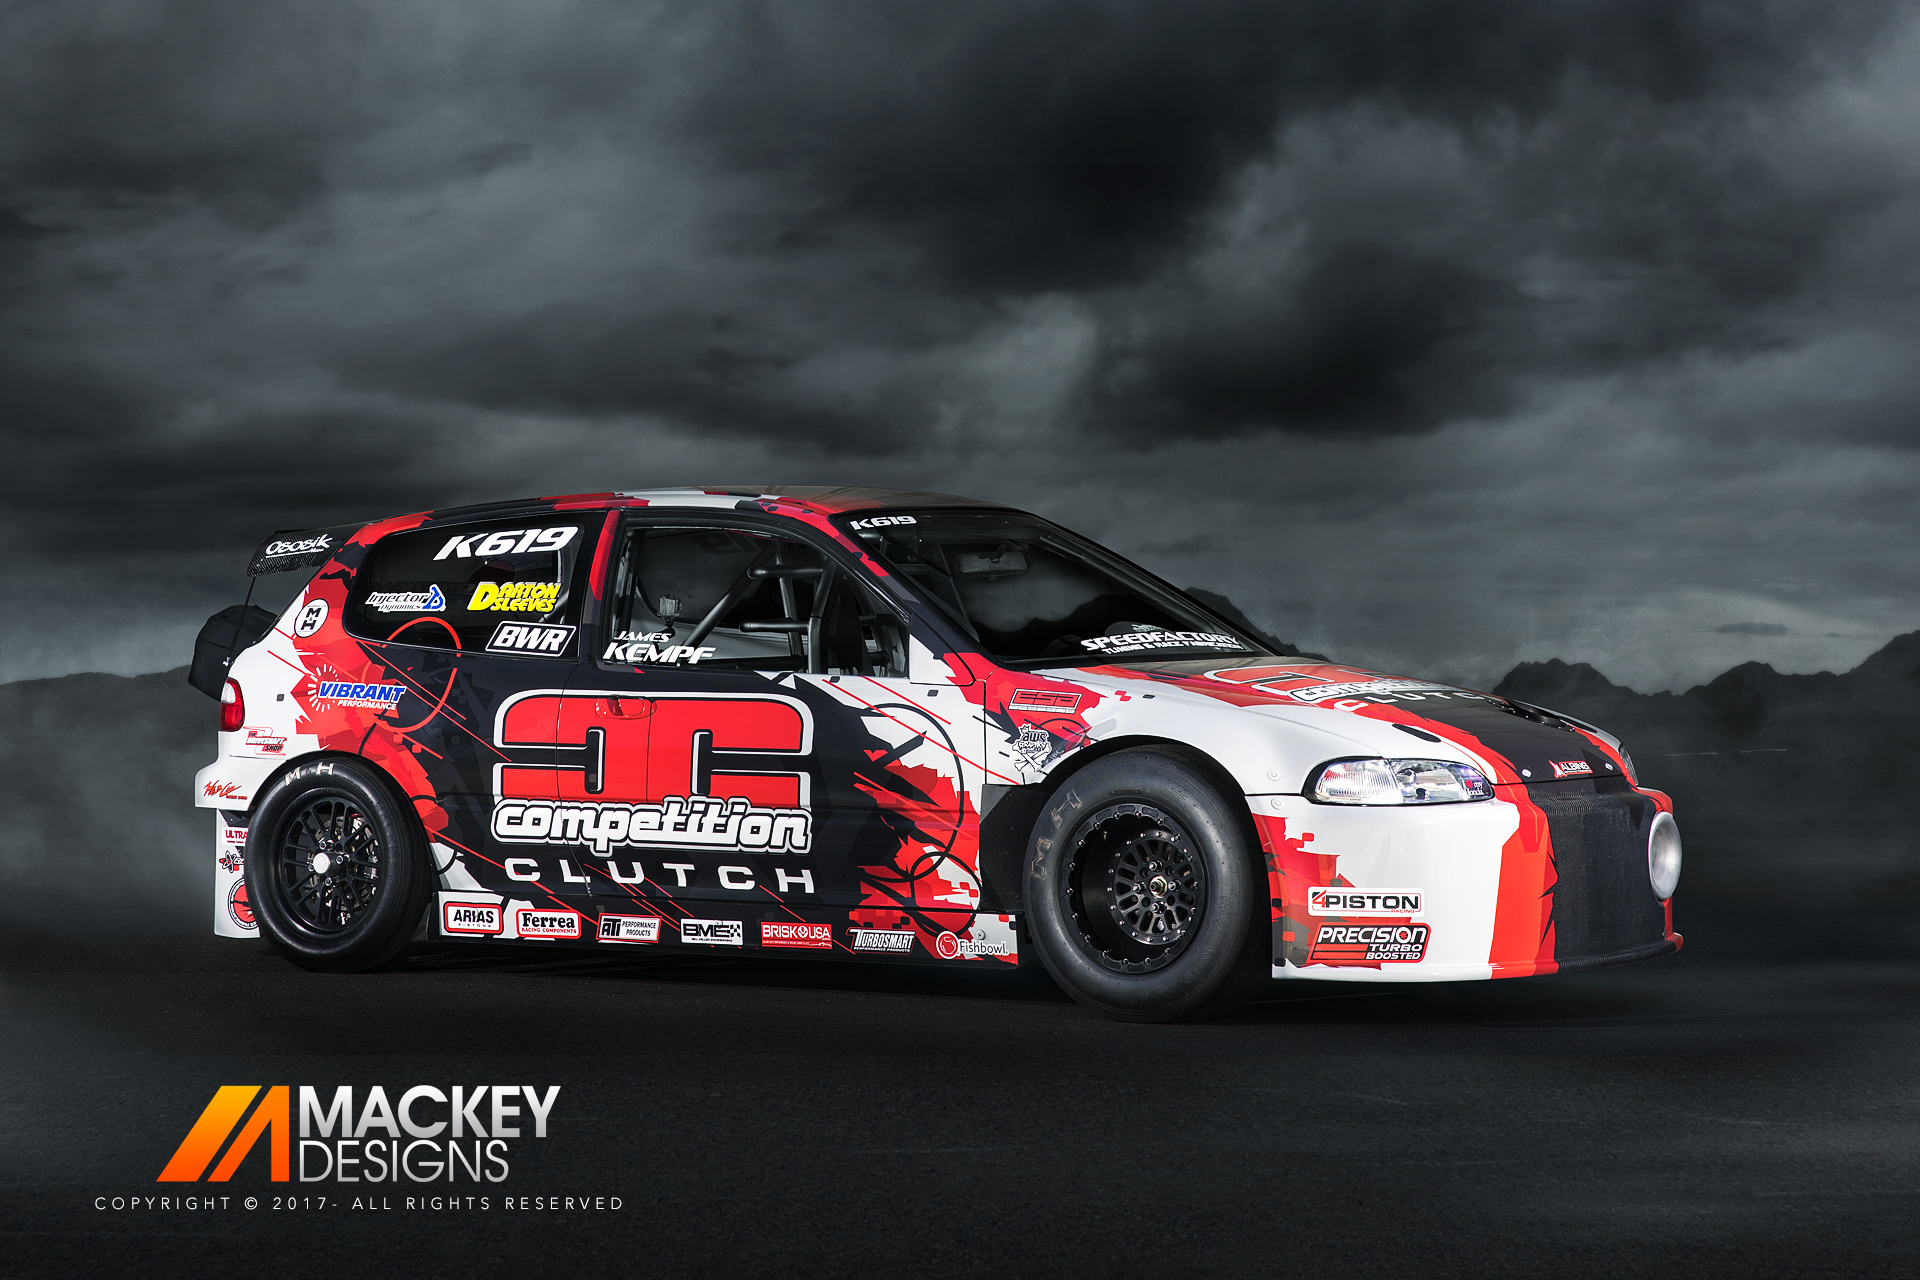 Automotive Photographer - Seattle - Josh Mackey - SpeedFactory Drag Racing Honda Civic